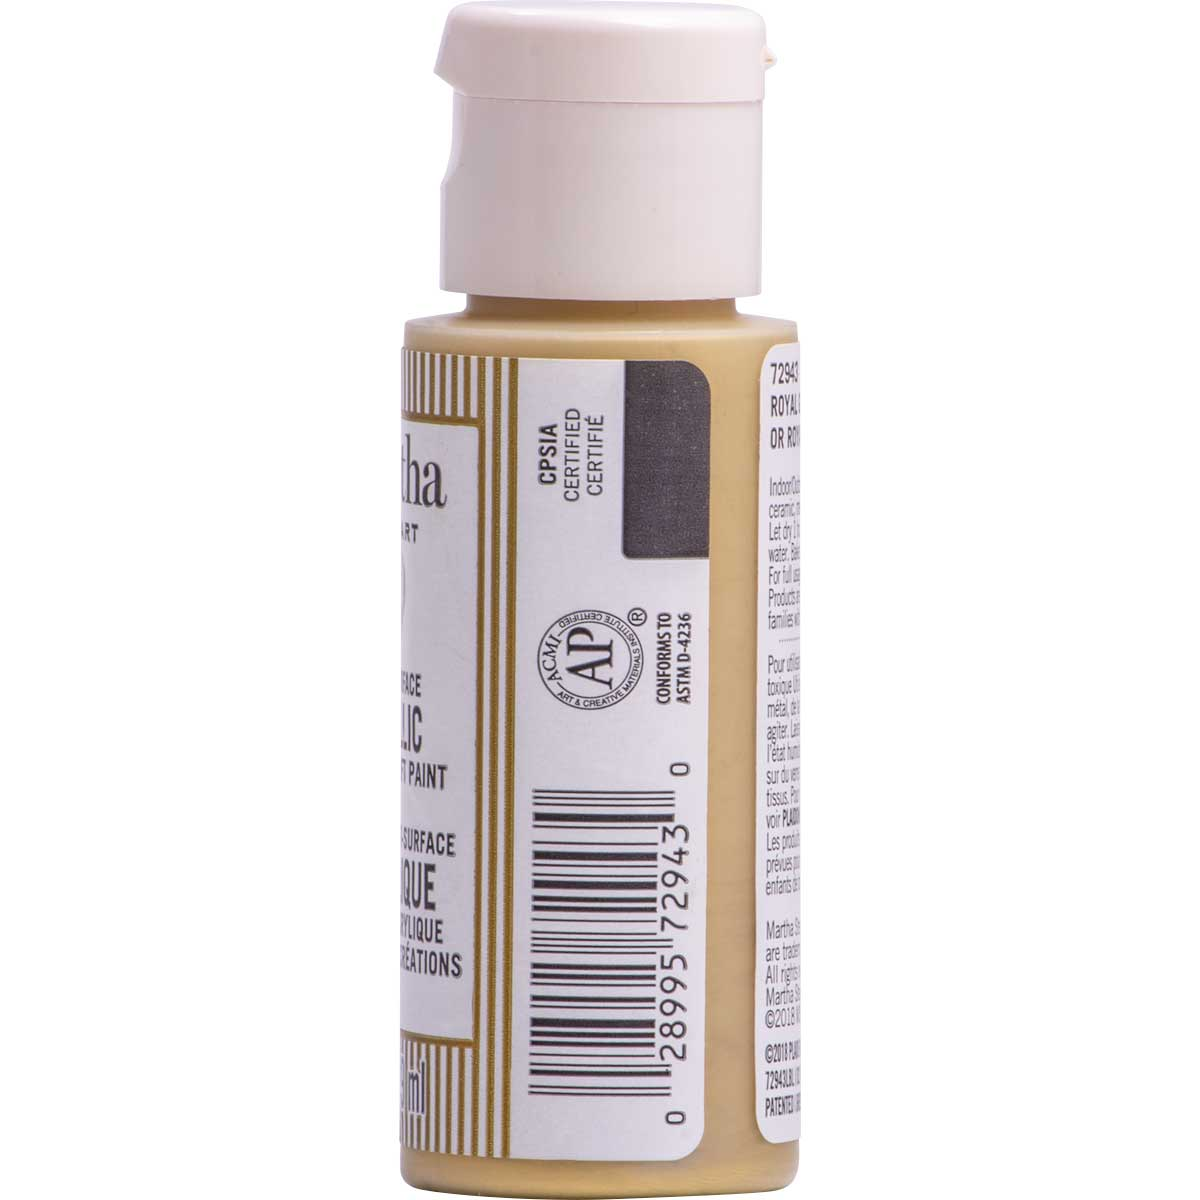 Martha Stewart ® Multi-Surface Metallic Acrylic Craft Paint CPSIA - Royal Gold, 2 oz. - 72943